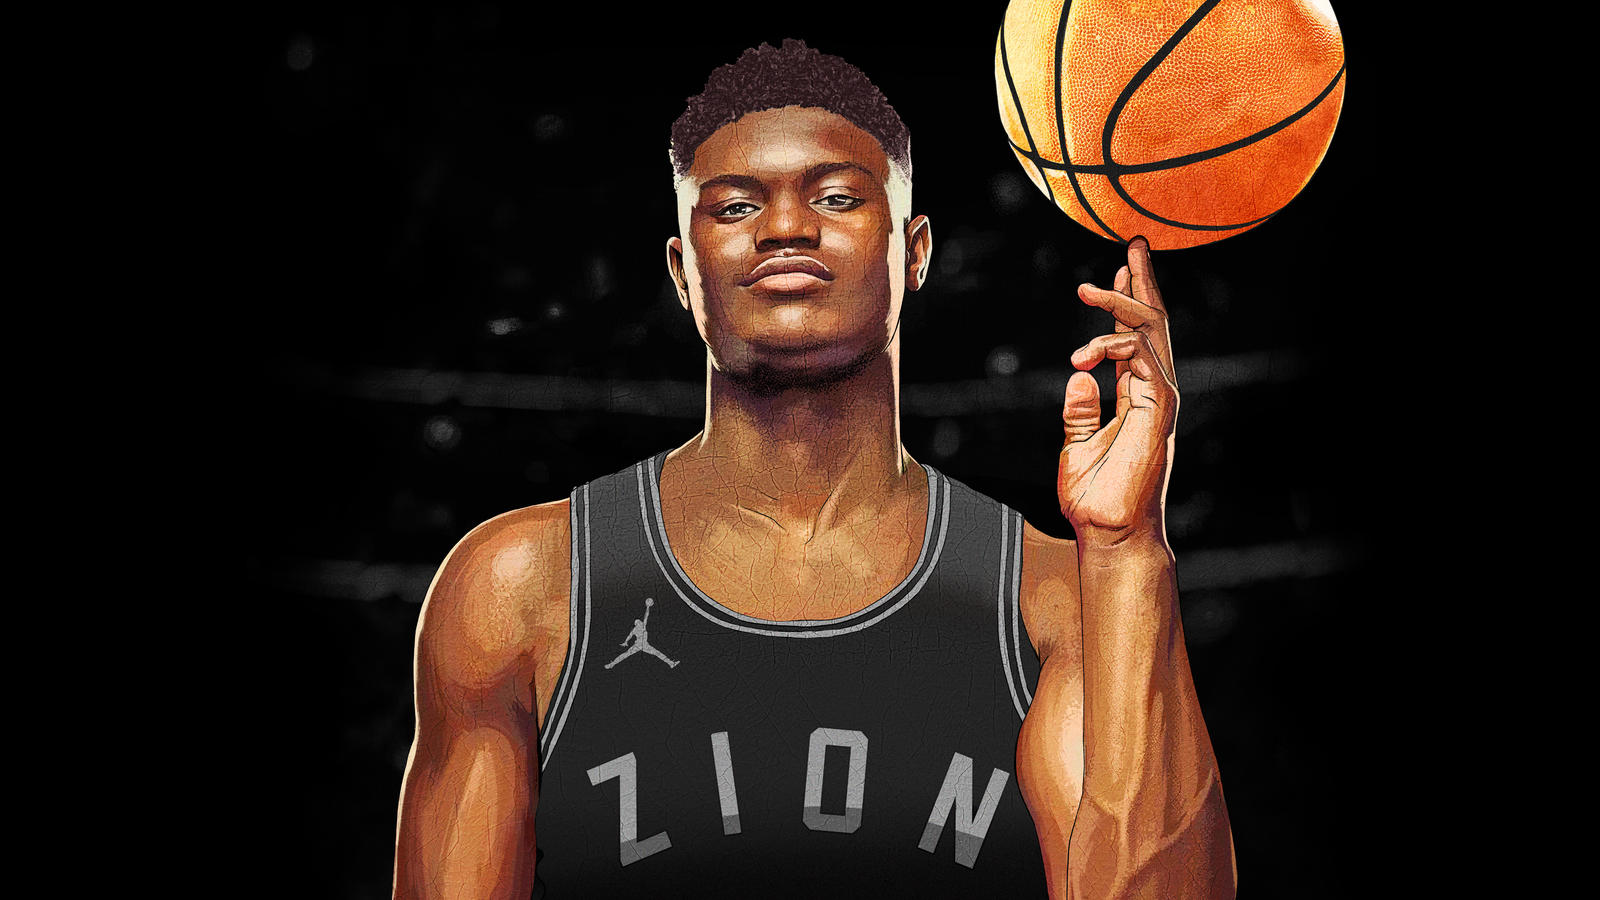 Zion Williamson Joins Jordan Brand Family 0